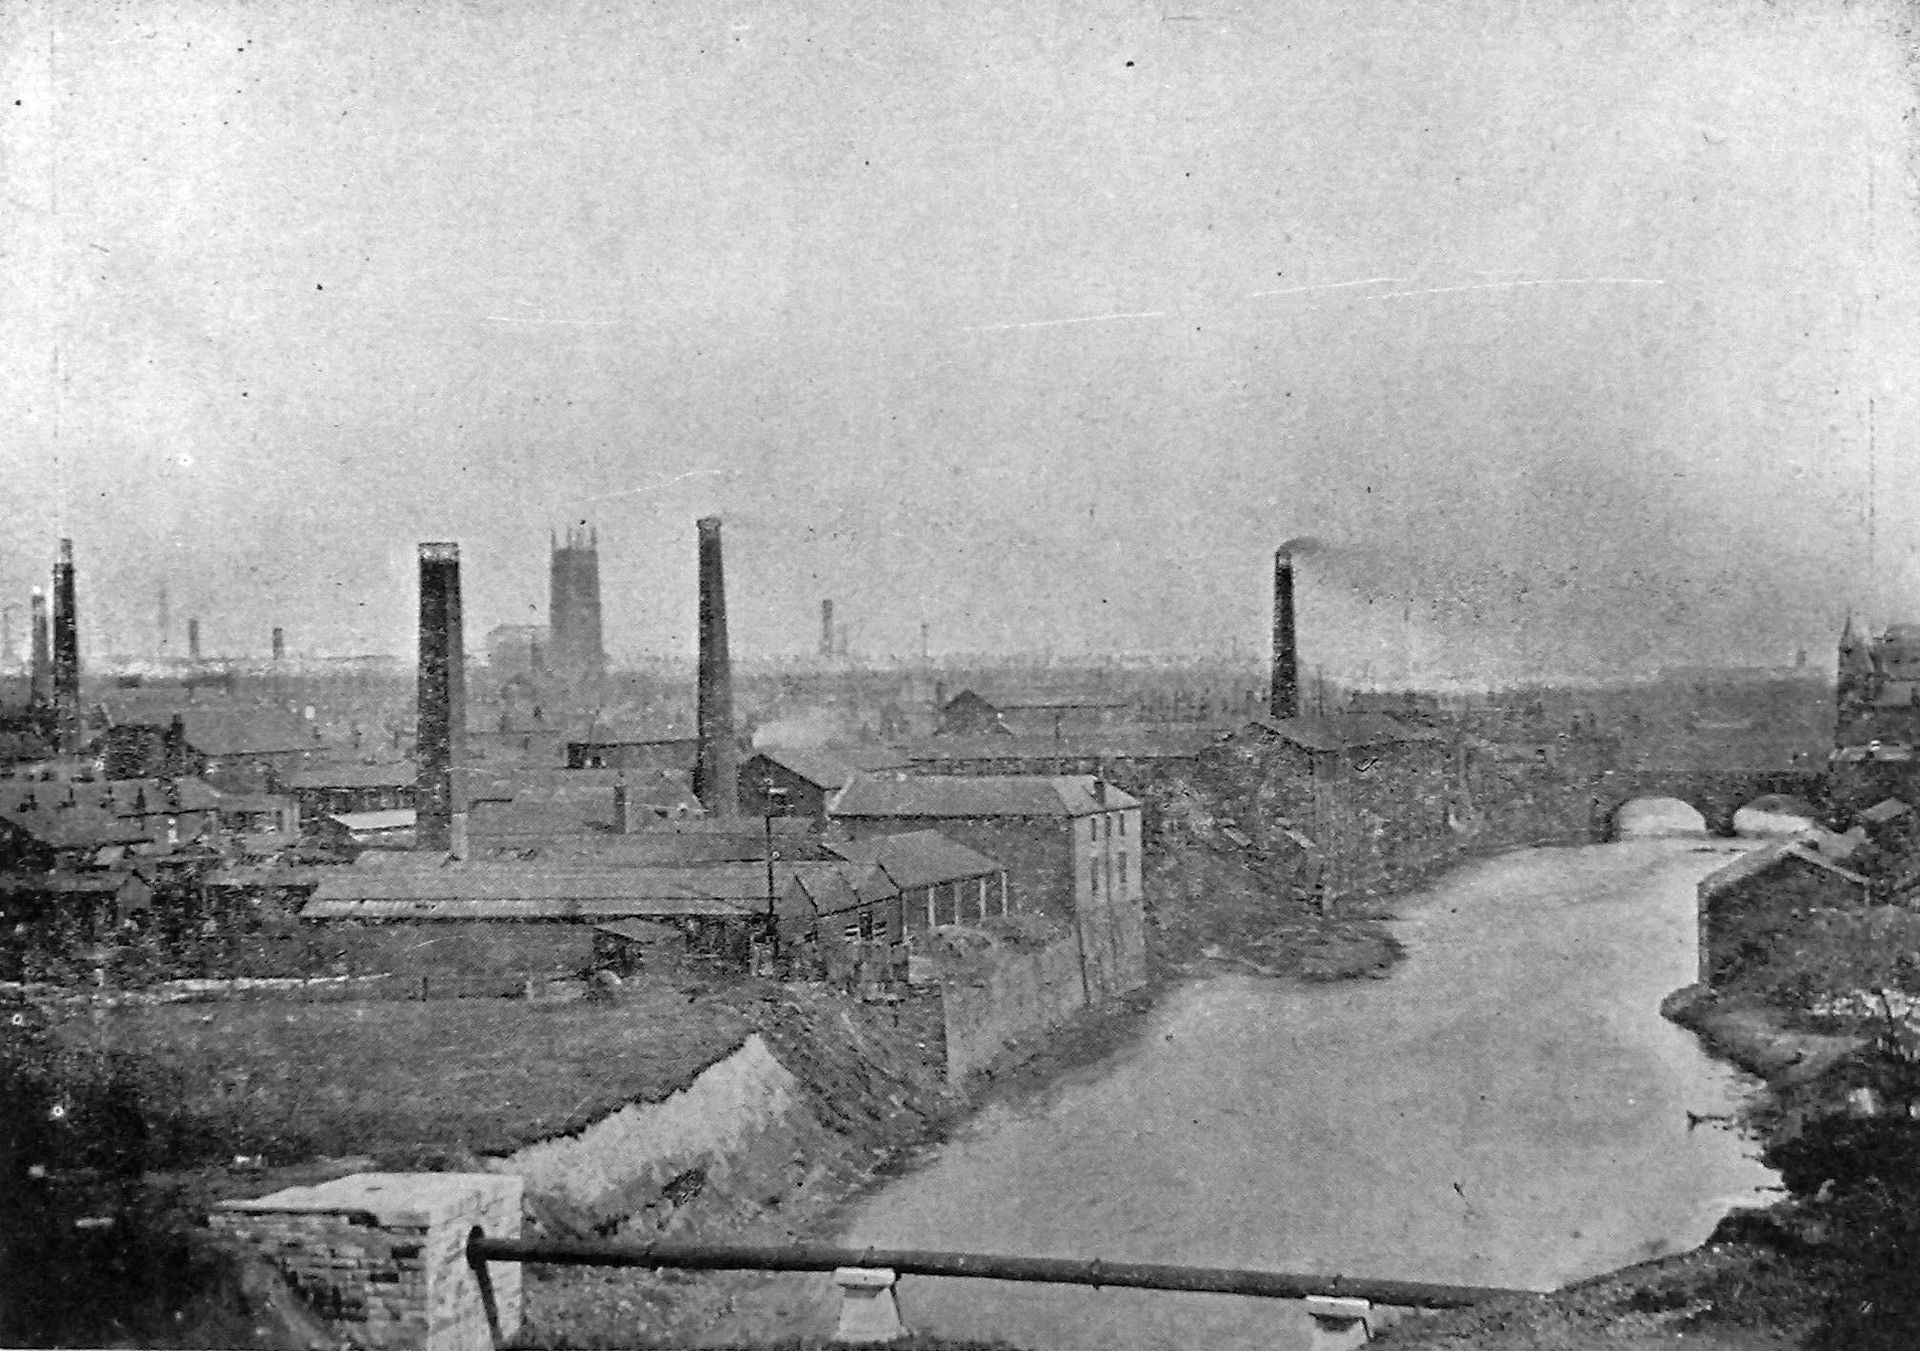 Sailing through Salford: The floods of 1852 that left the north 6ft underwater, The Manc